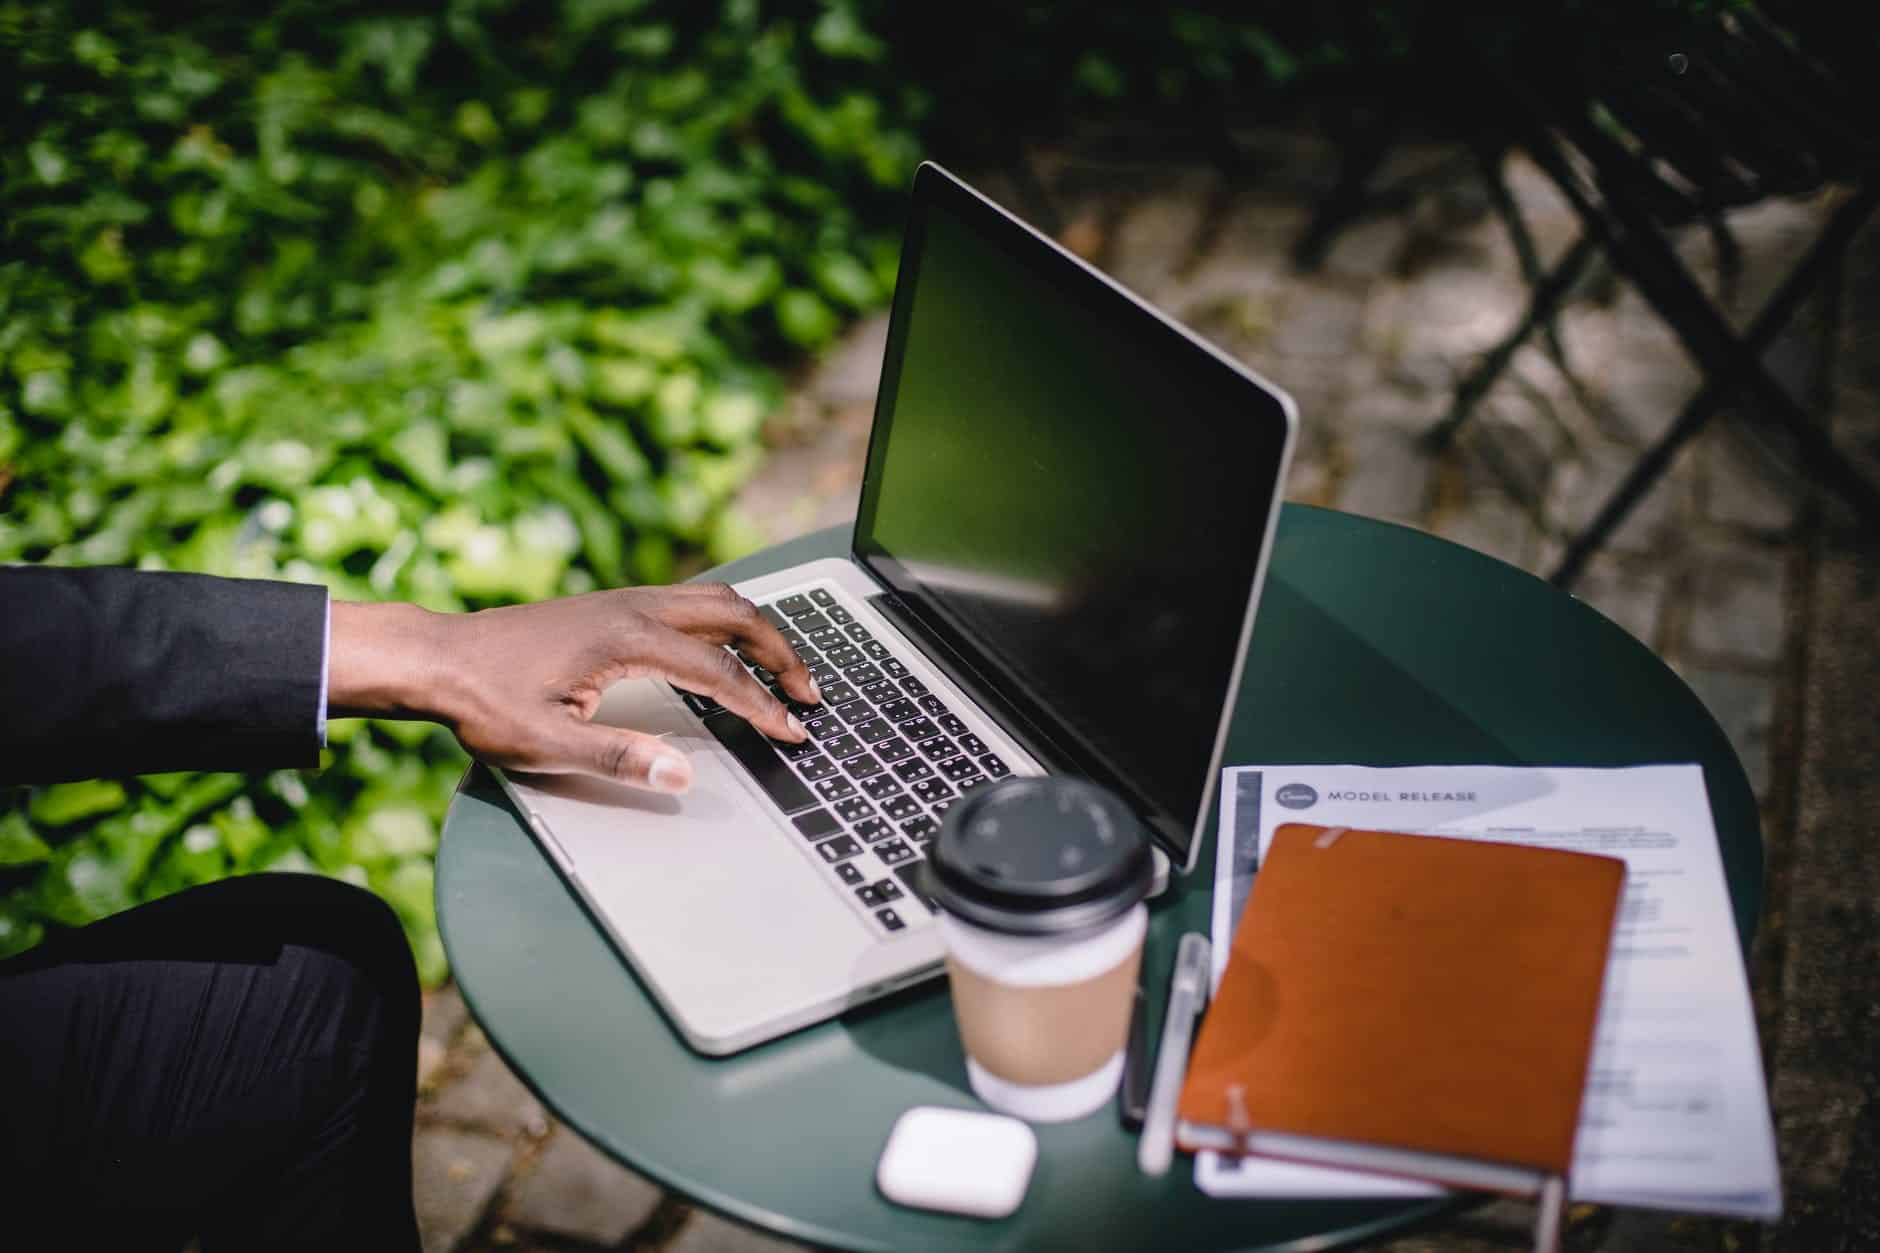 Advantages Of Online Jobs: The Idea Of Working From Home